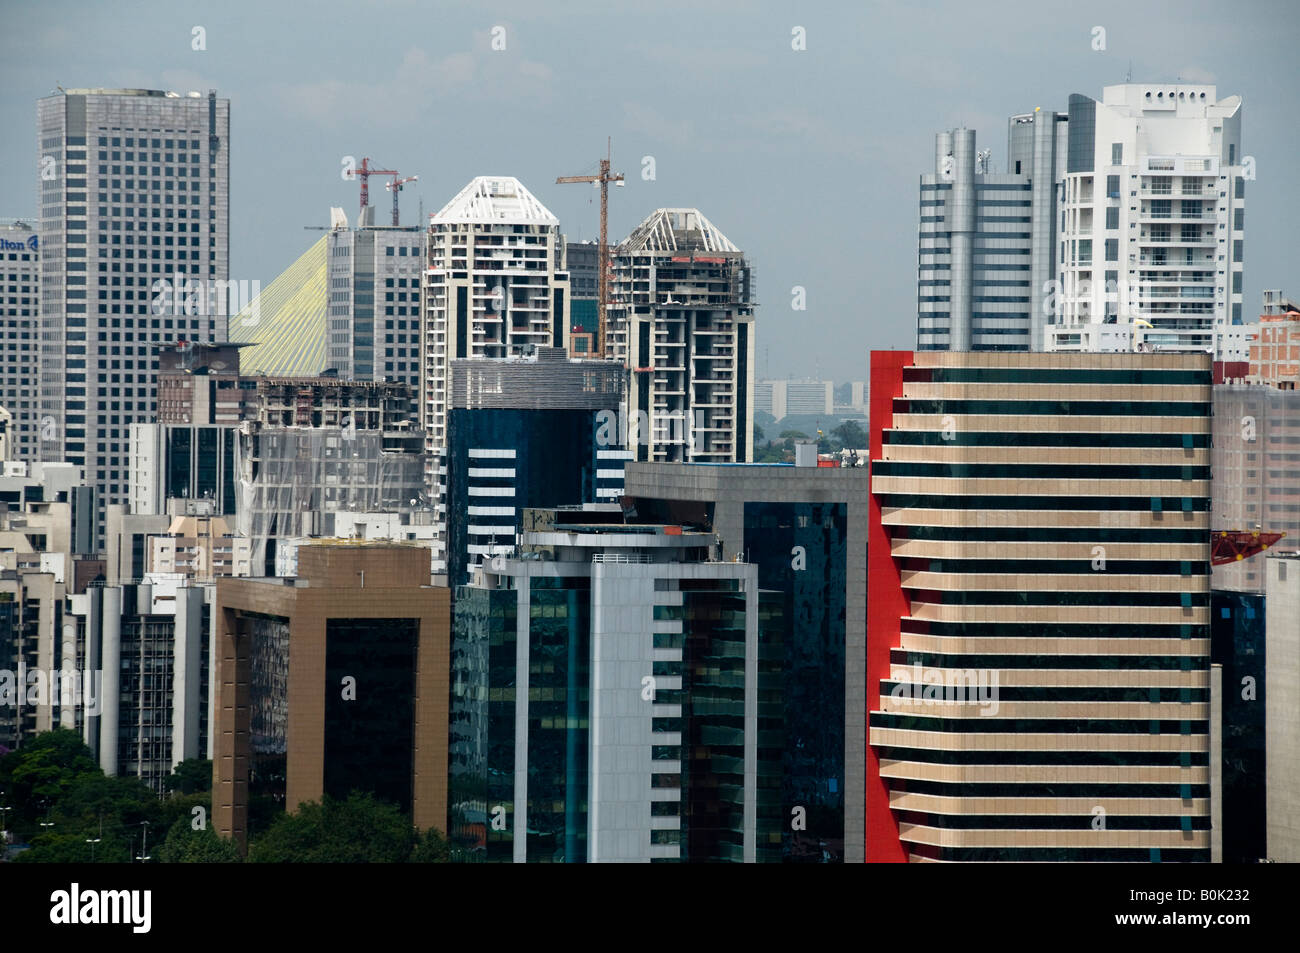 Sao Paulo s skyline seen from Berrini Avenue Sao Paulo Brazil 02 14 08 Berrini avenue - Stock Image